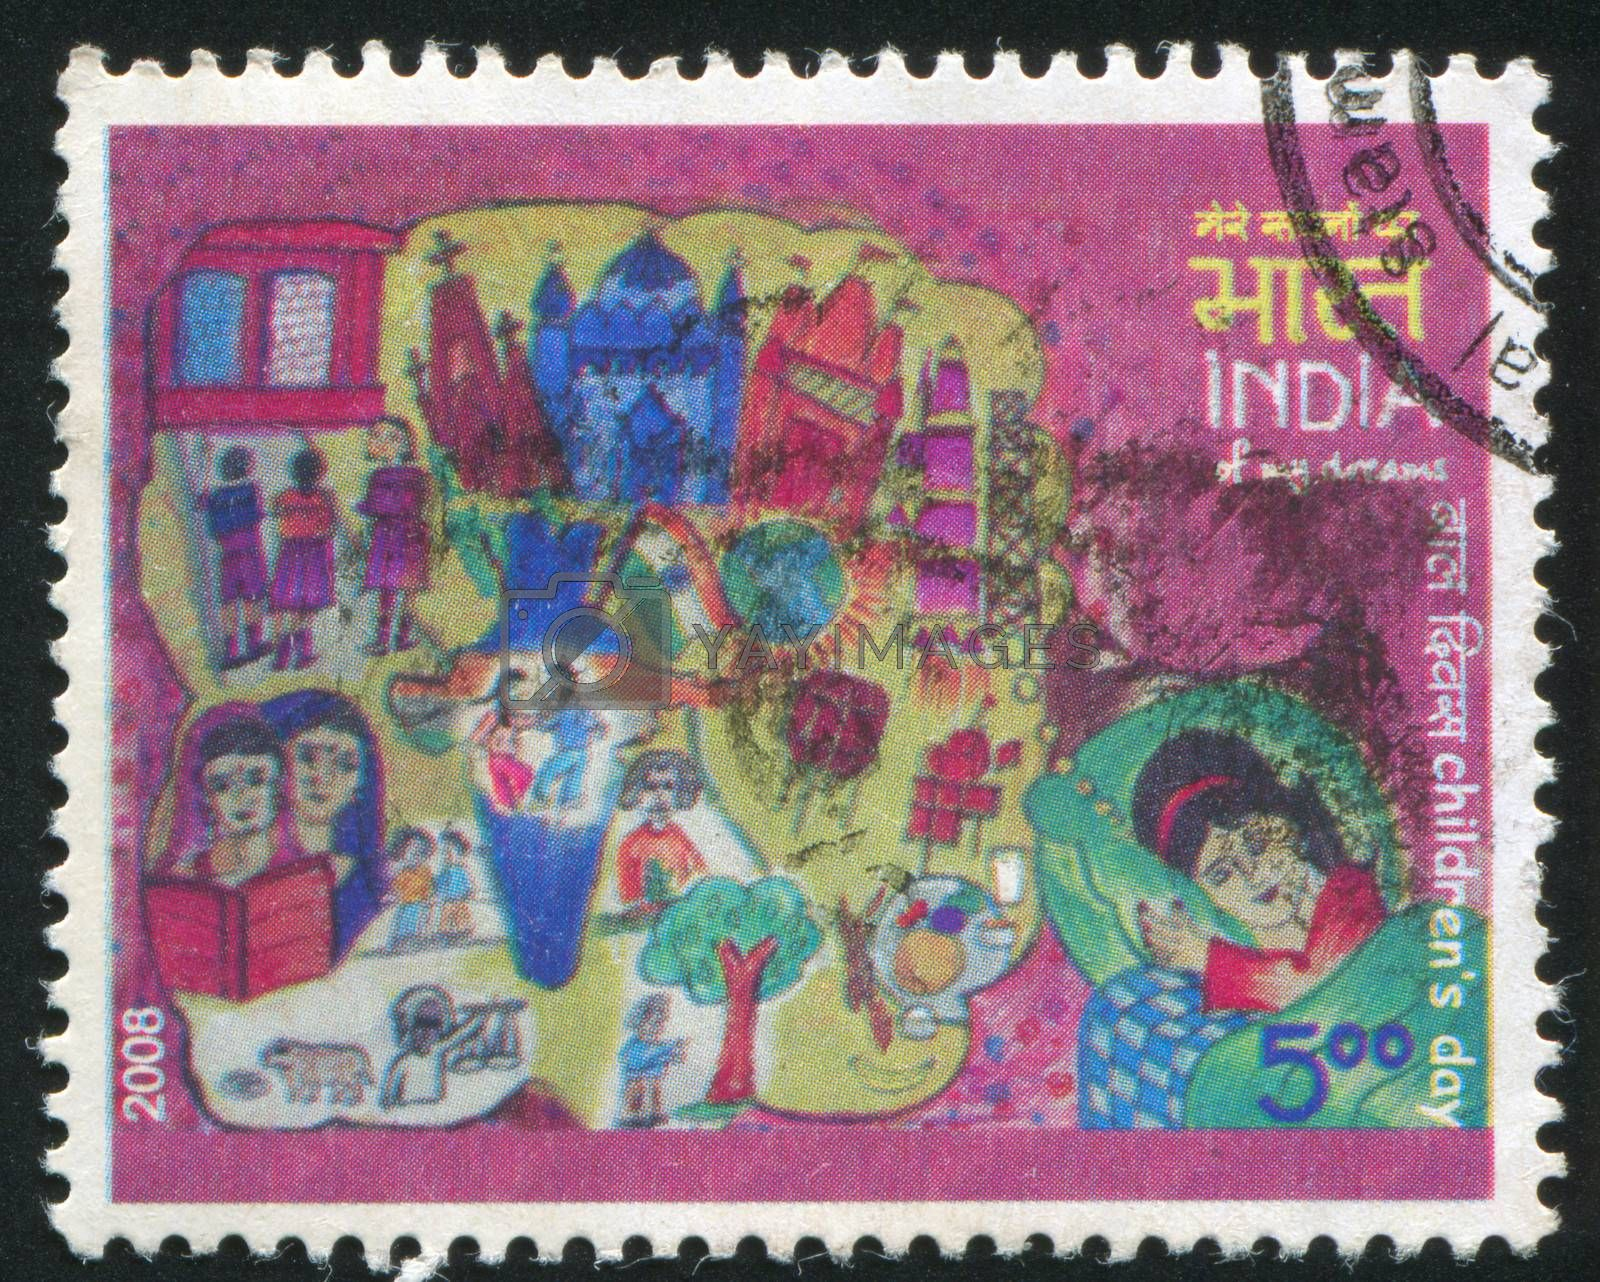 INDIA - CIRCA 2008: stamp printed by India, shows picture of a girl's dream, children, tree, houses, globe, circa 2008